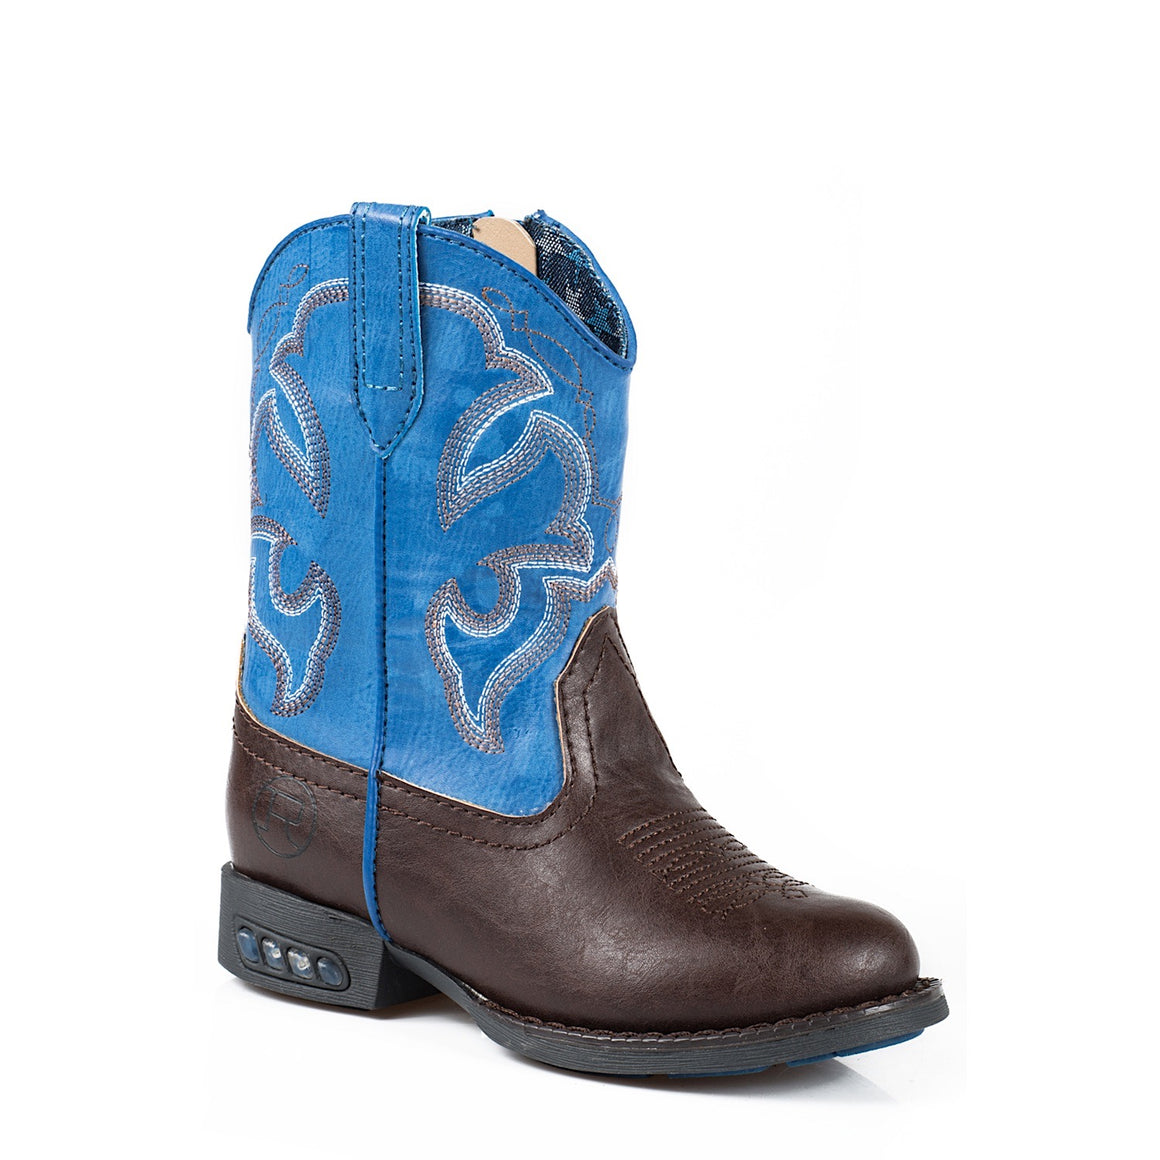 Roper TODDLER Lightning Western Boots Brown/Blue